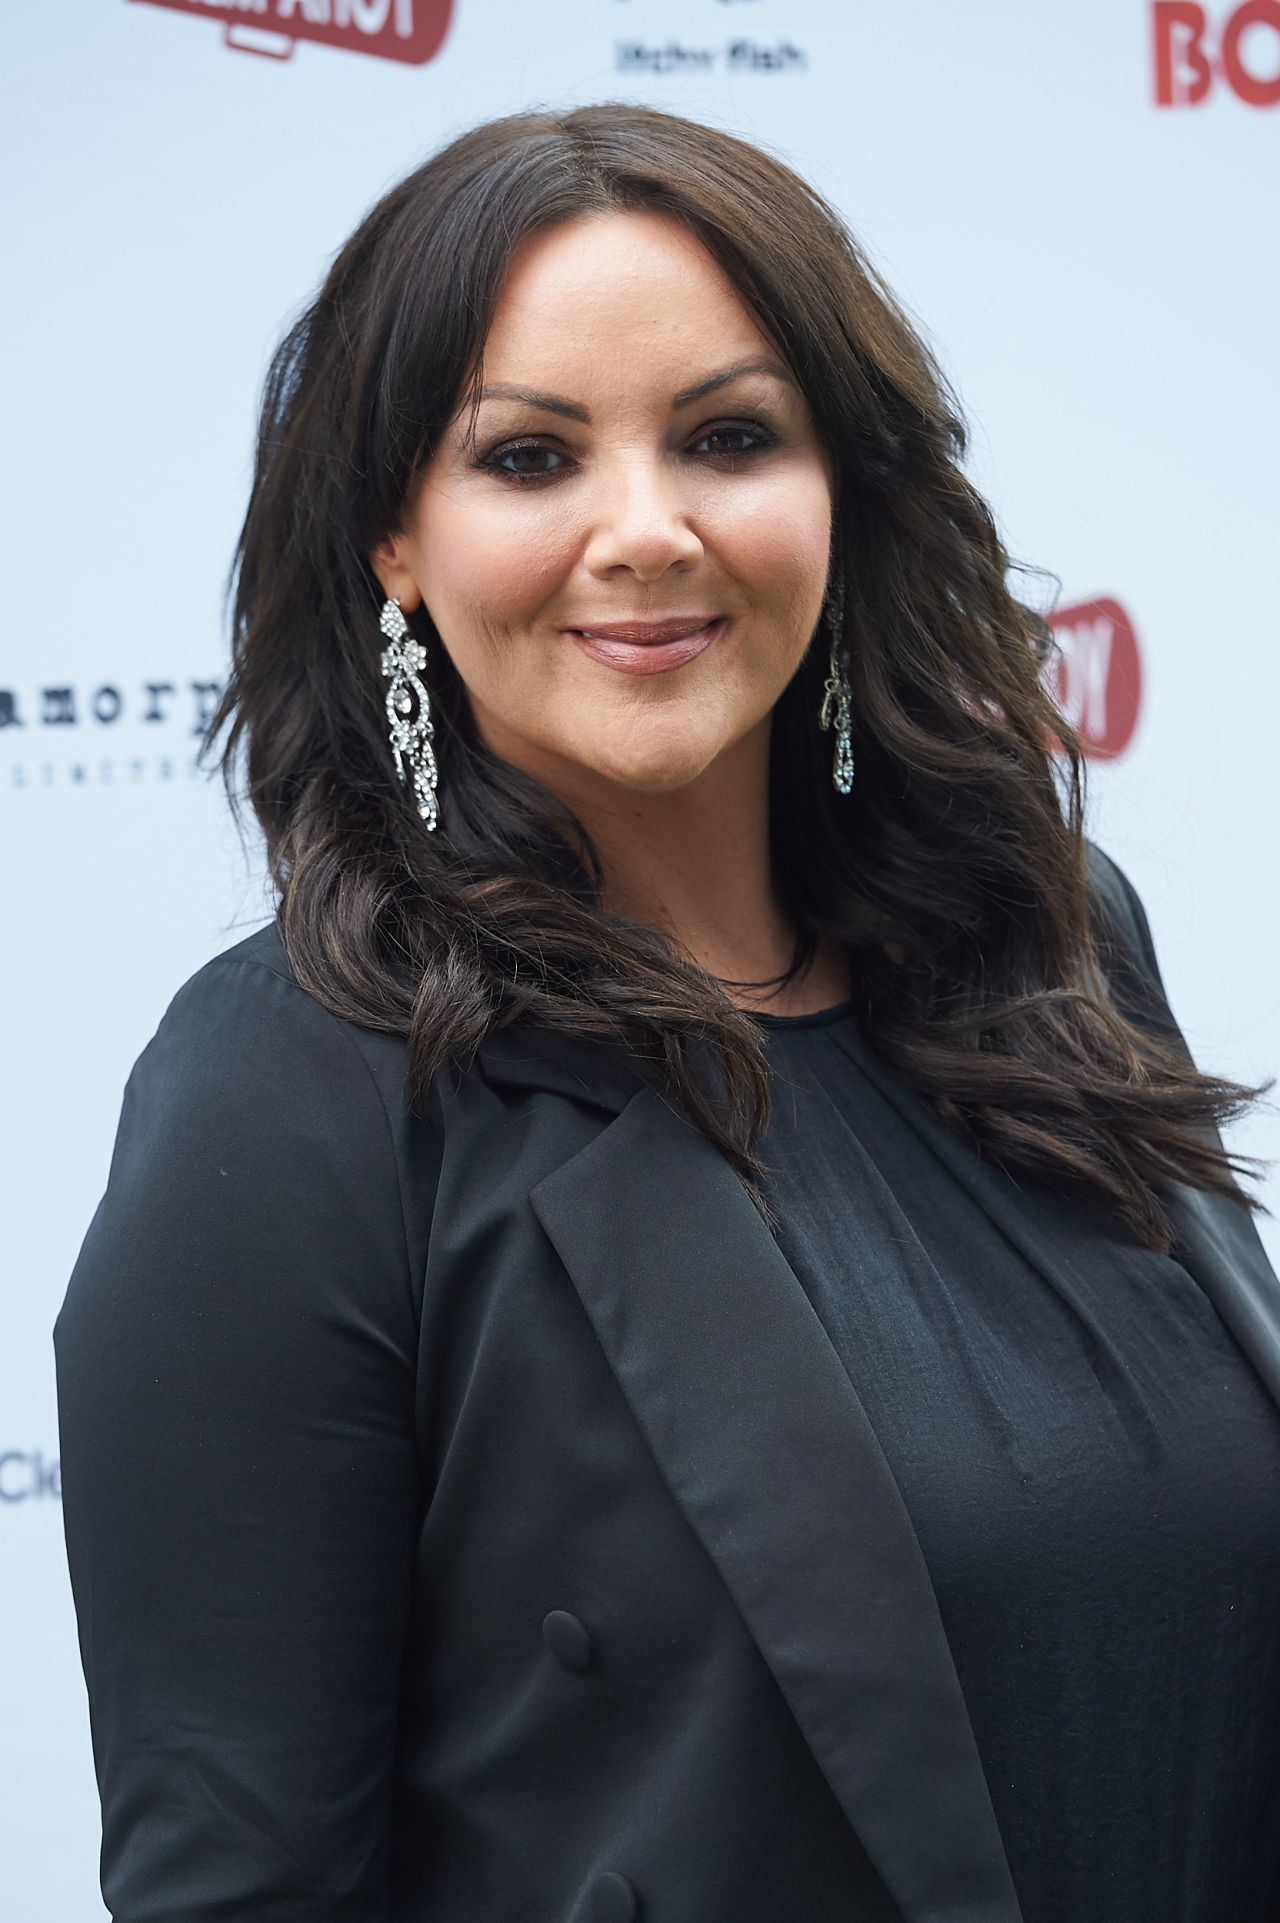 Martine Mccutcheon Style Clothes Outfits And Fashion Celebmafia